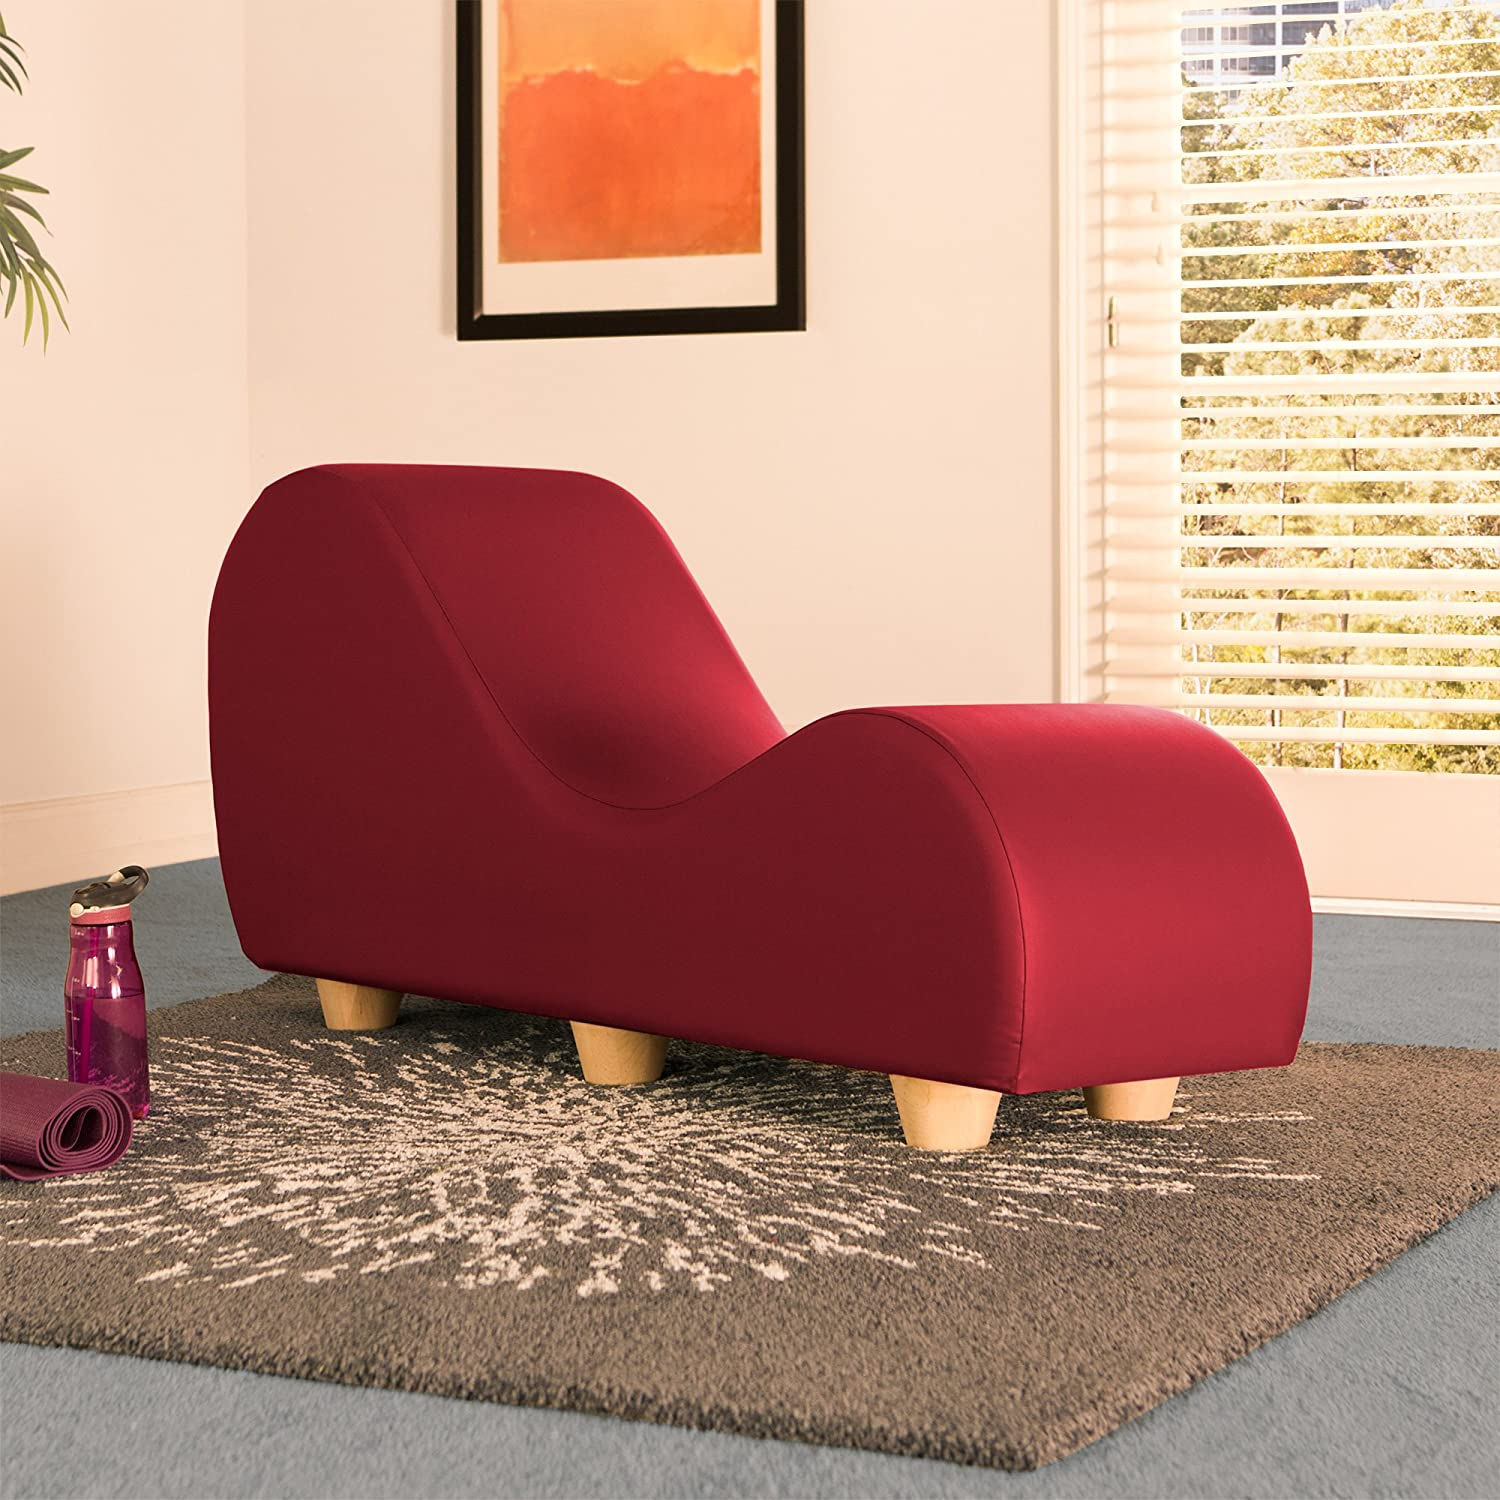 pink chaise to products sectional choice ave the of fabrics lemonade scroll clinton swipe